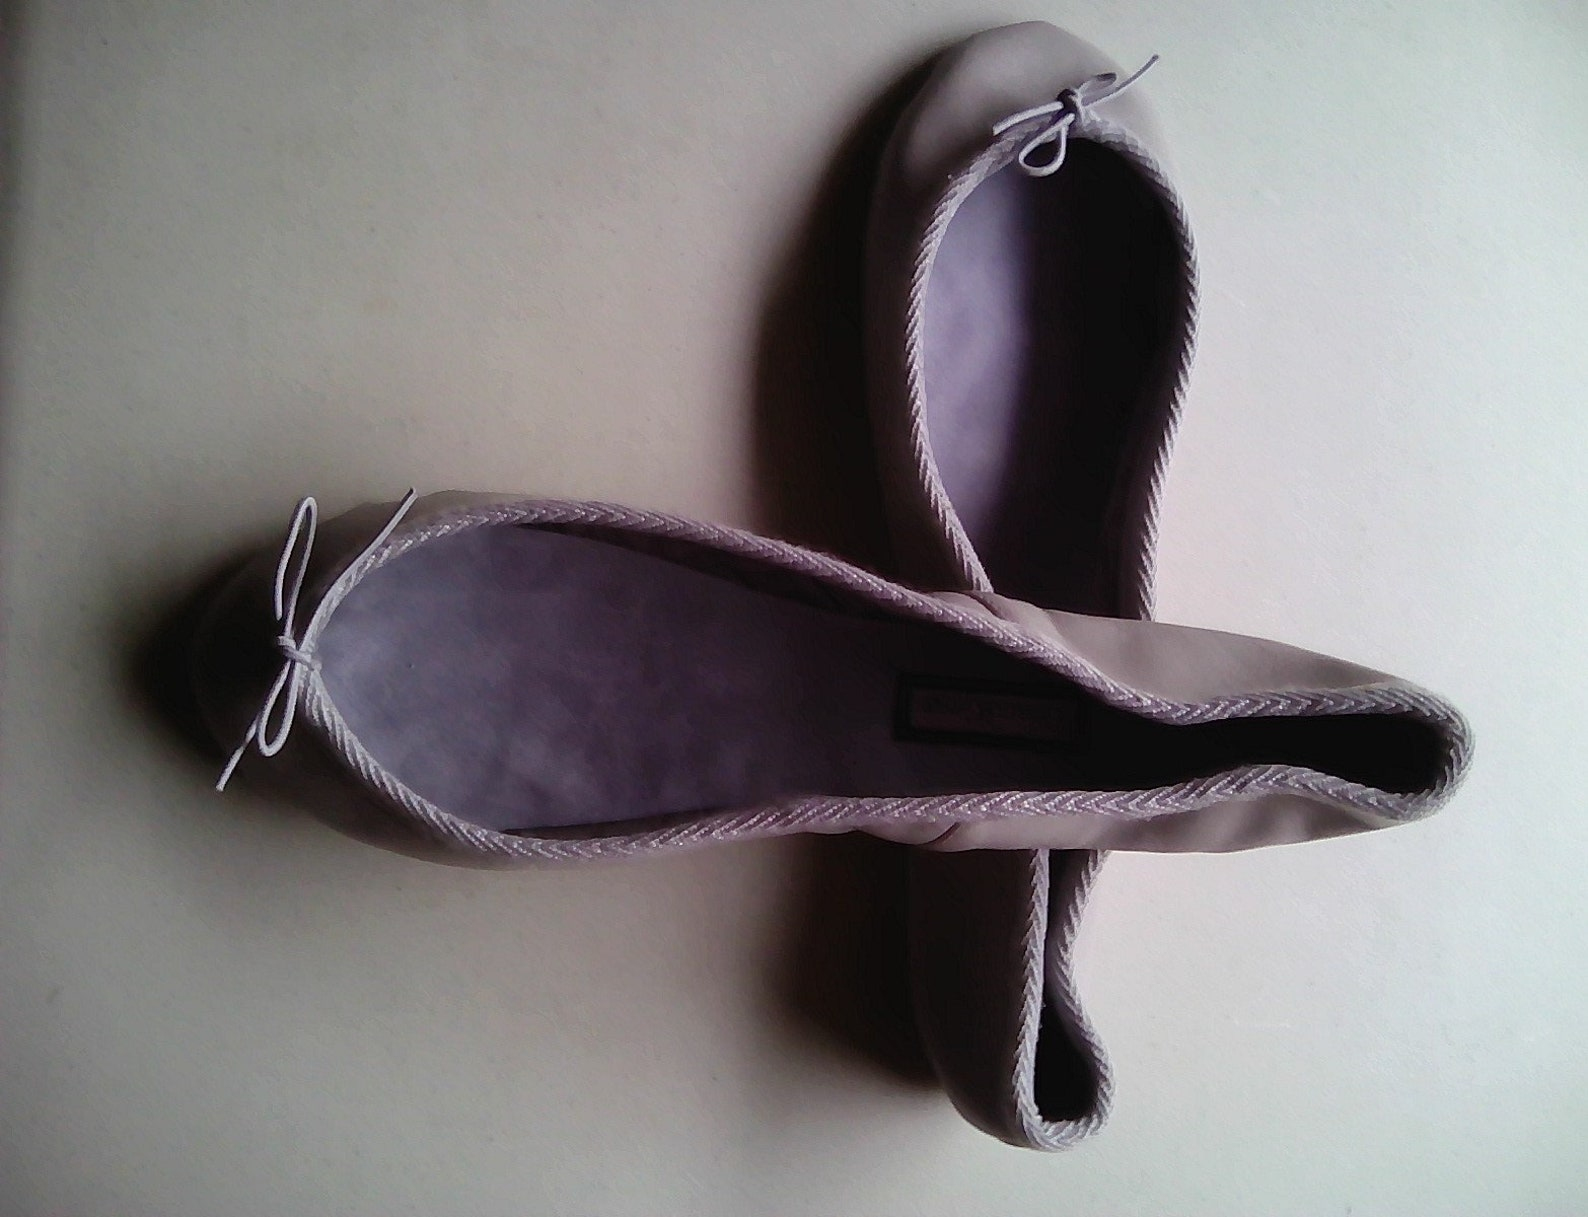 extreme low-cut pale grey leather ballet shoes - adult sizes